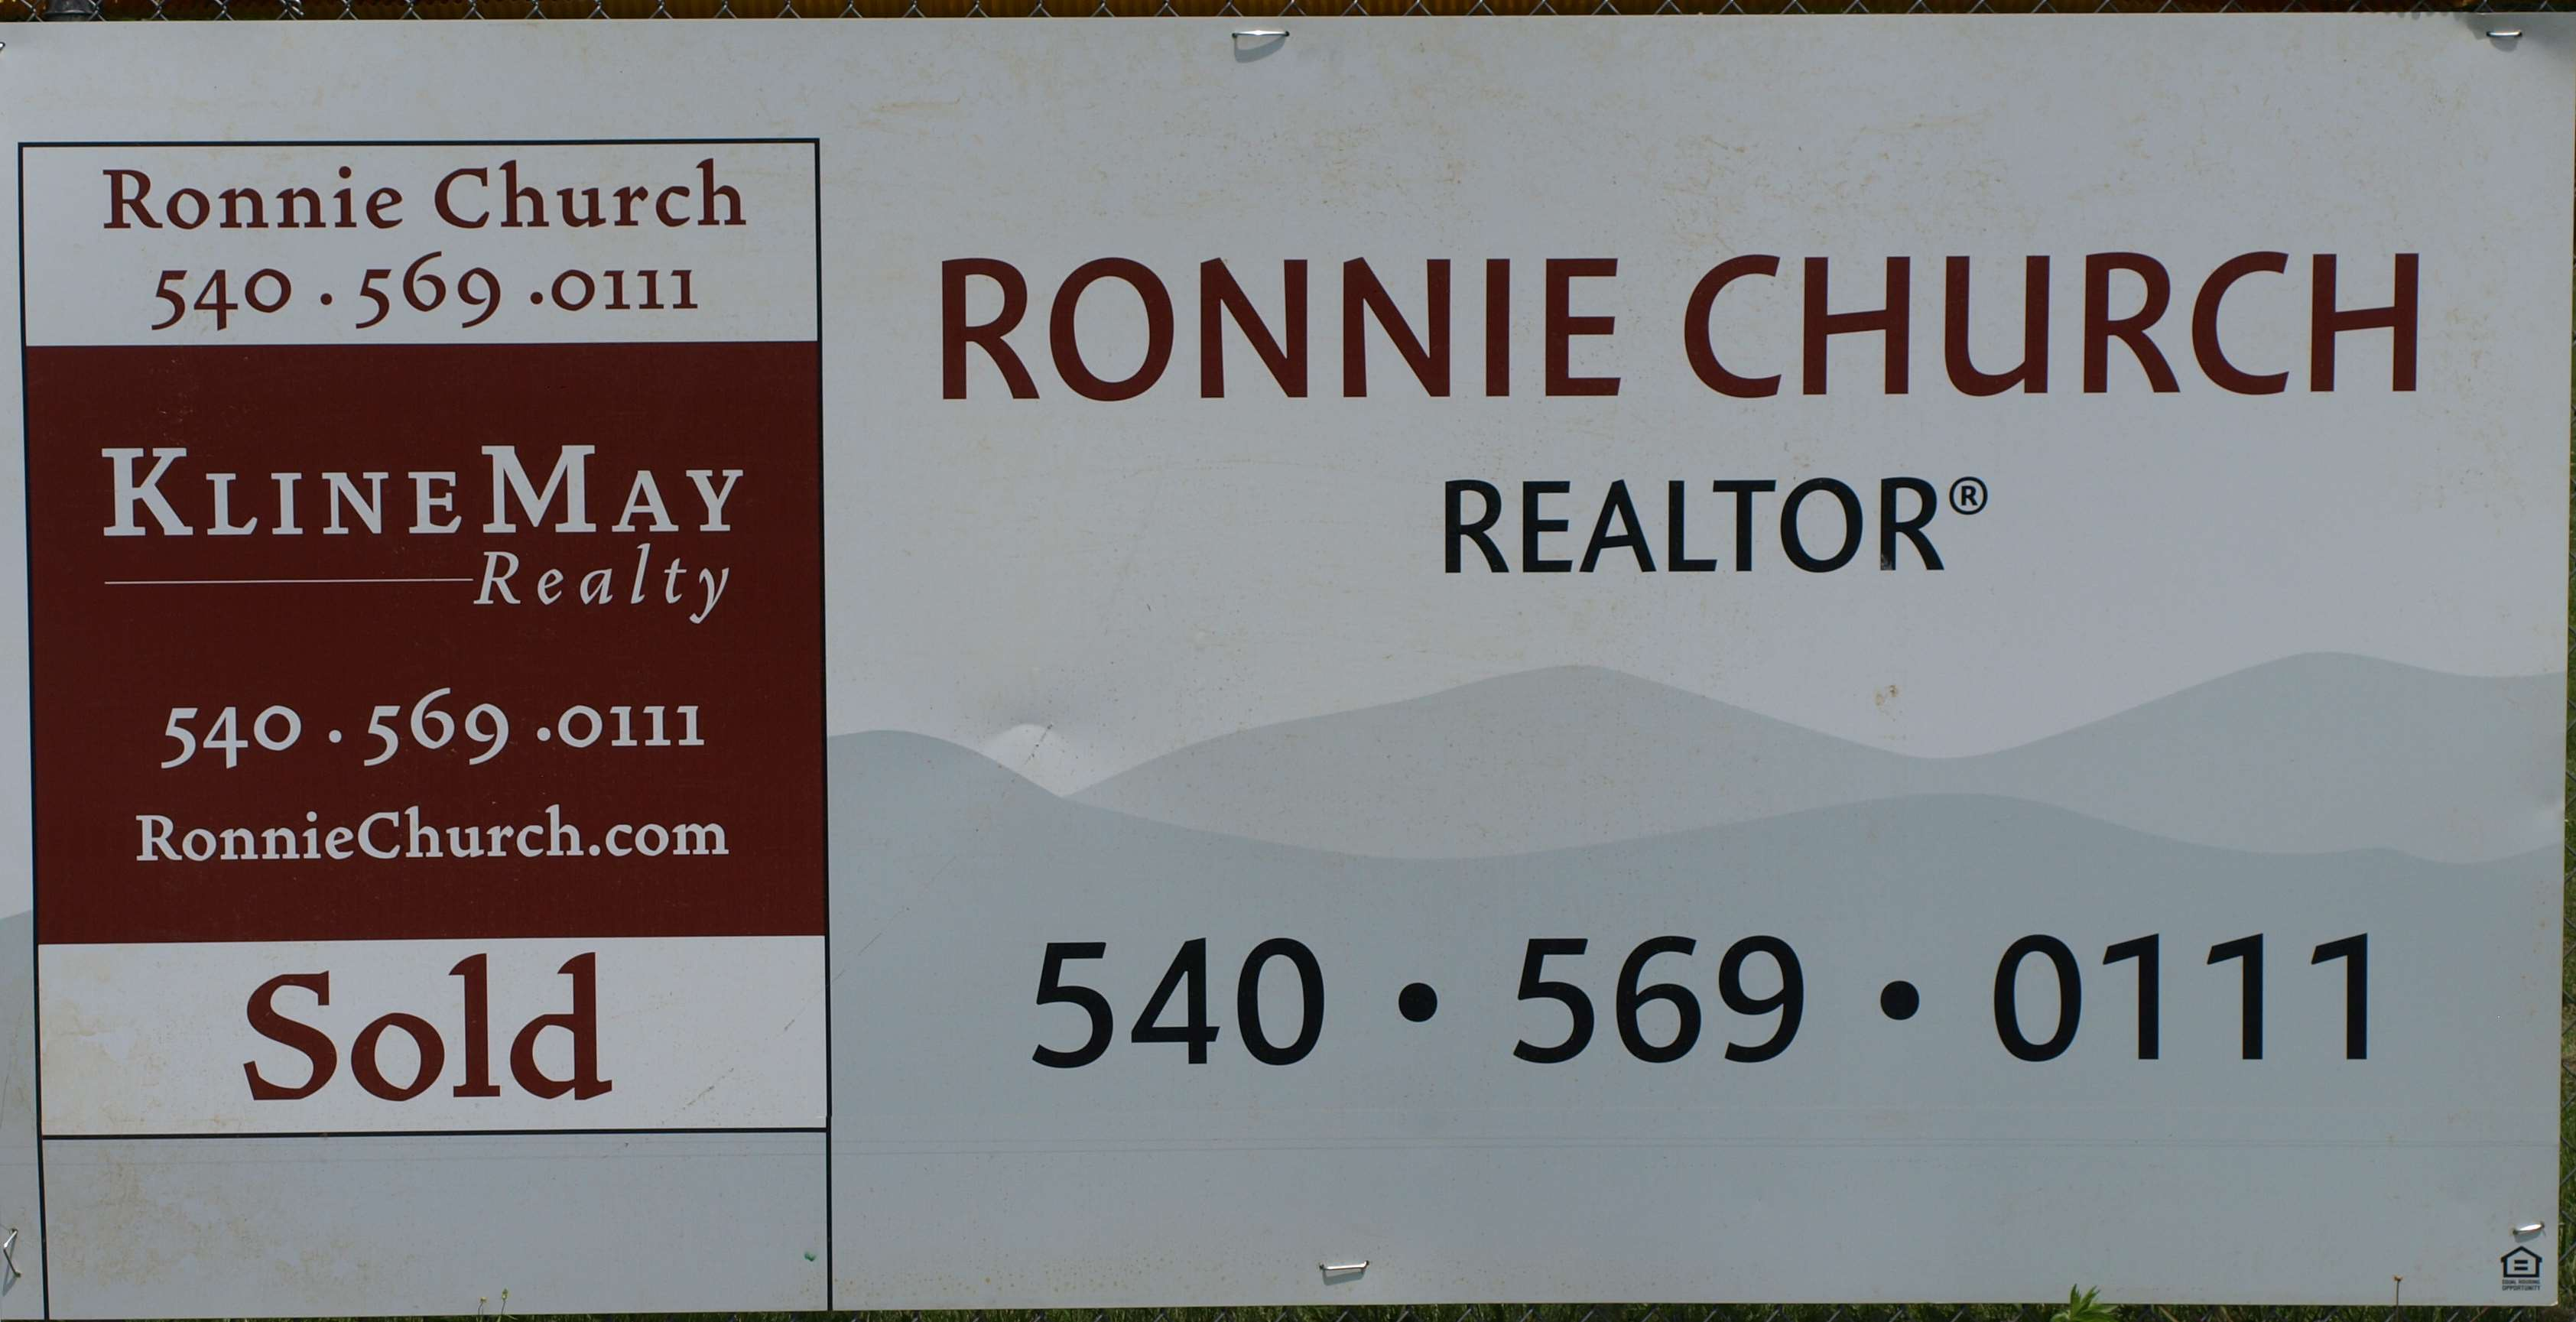 Kline Realty - Ronnie Church